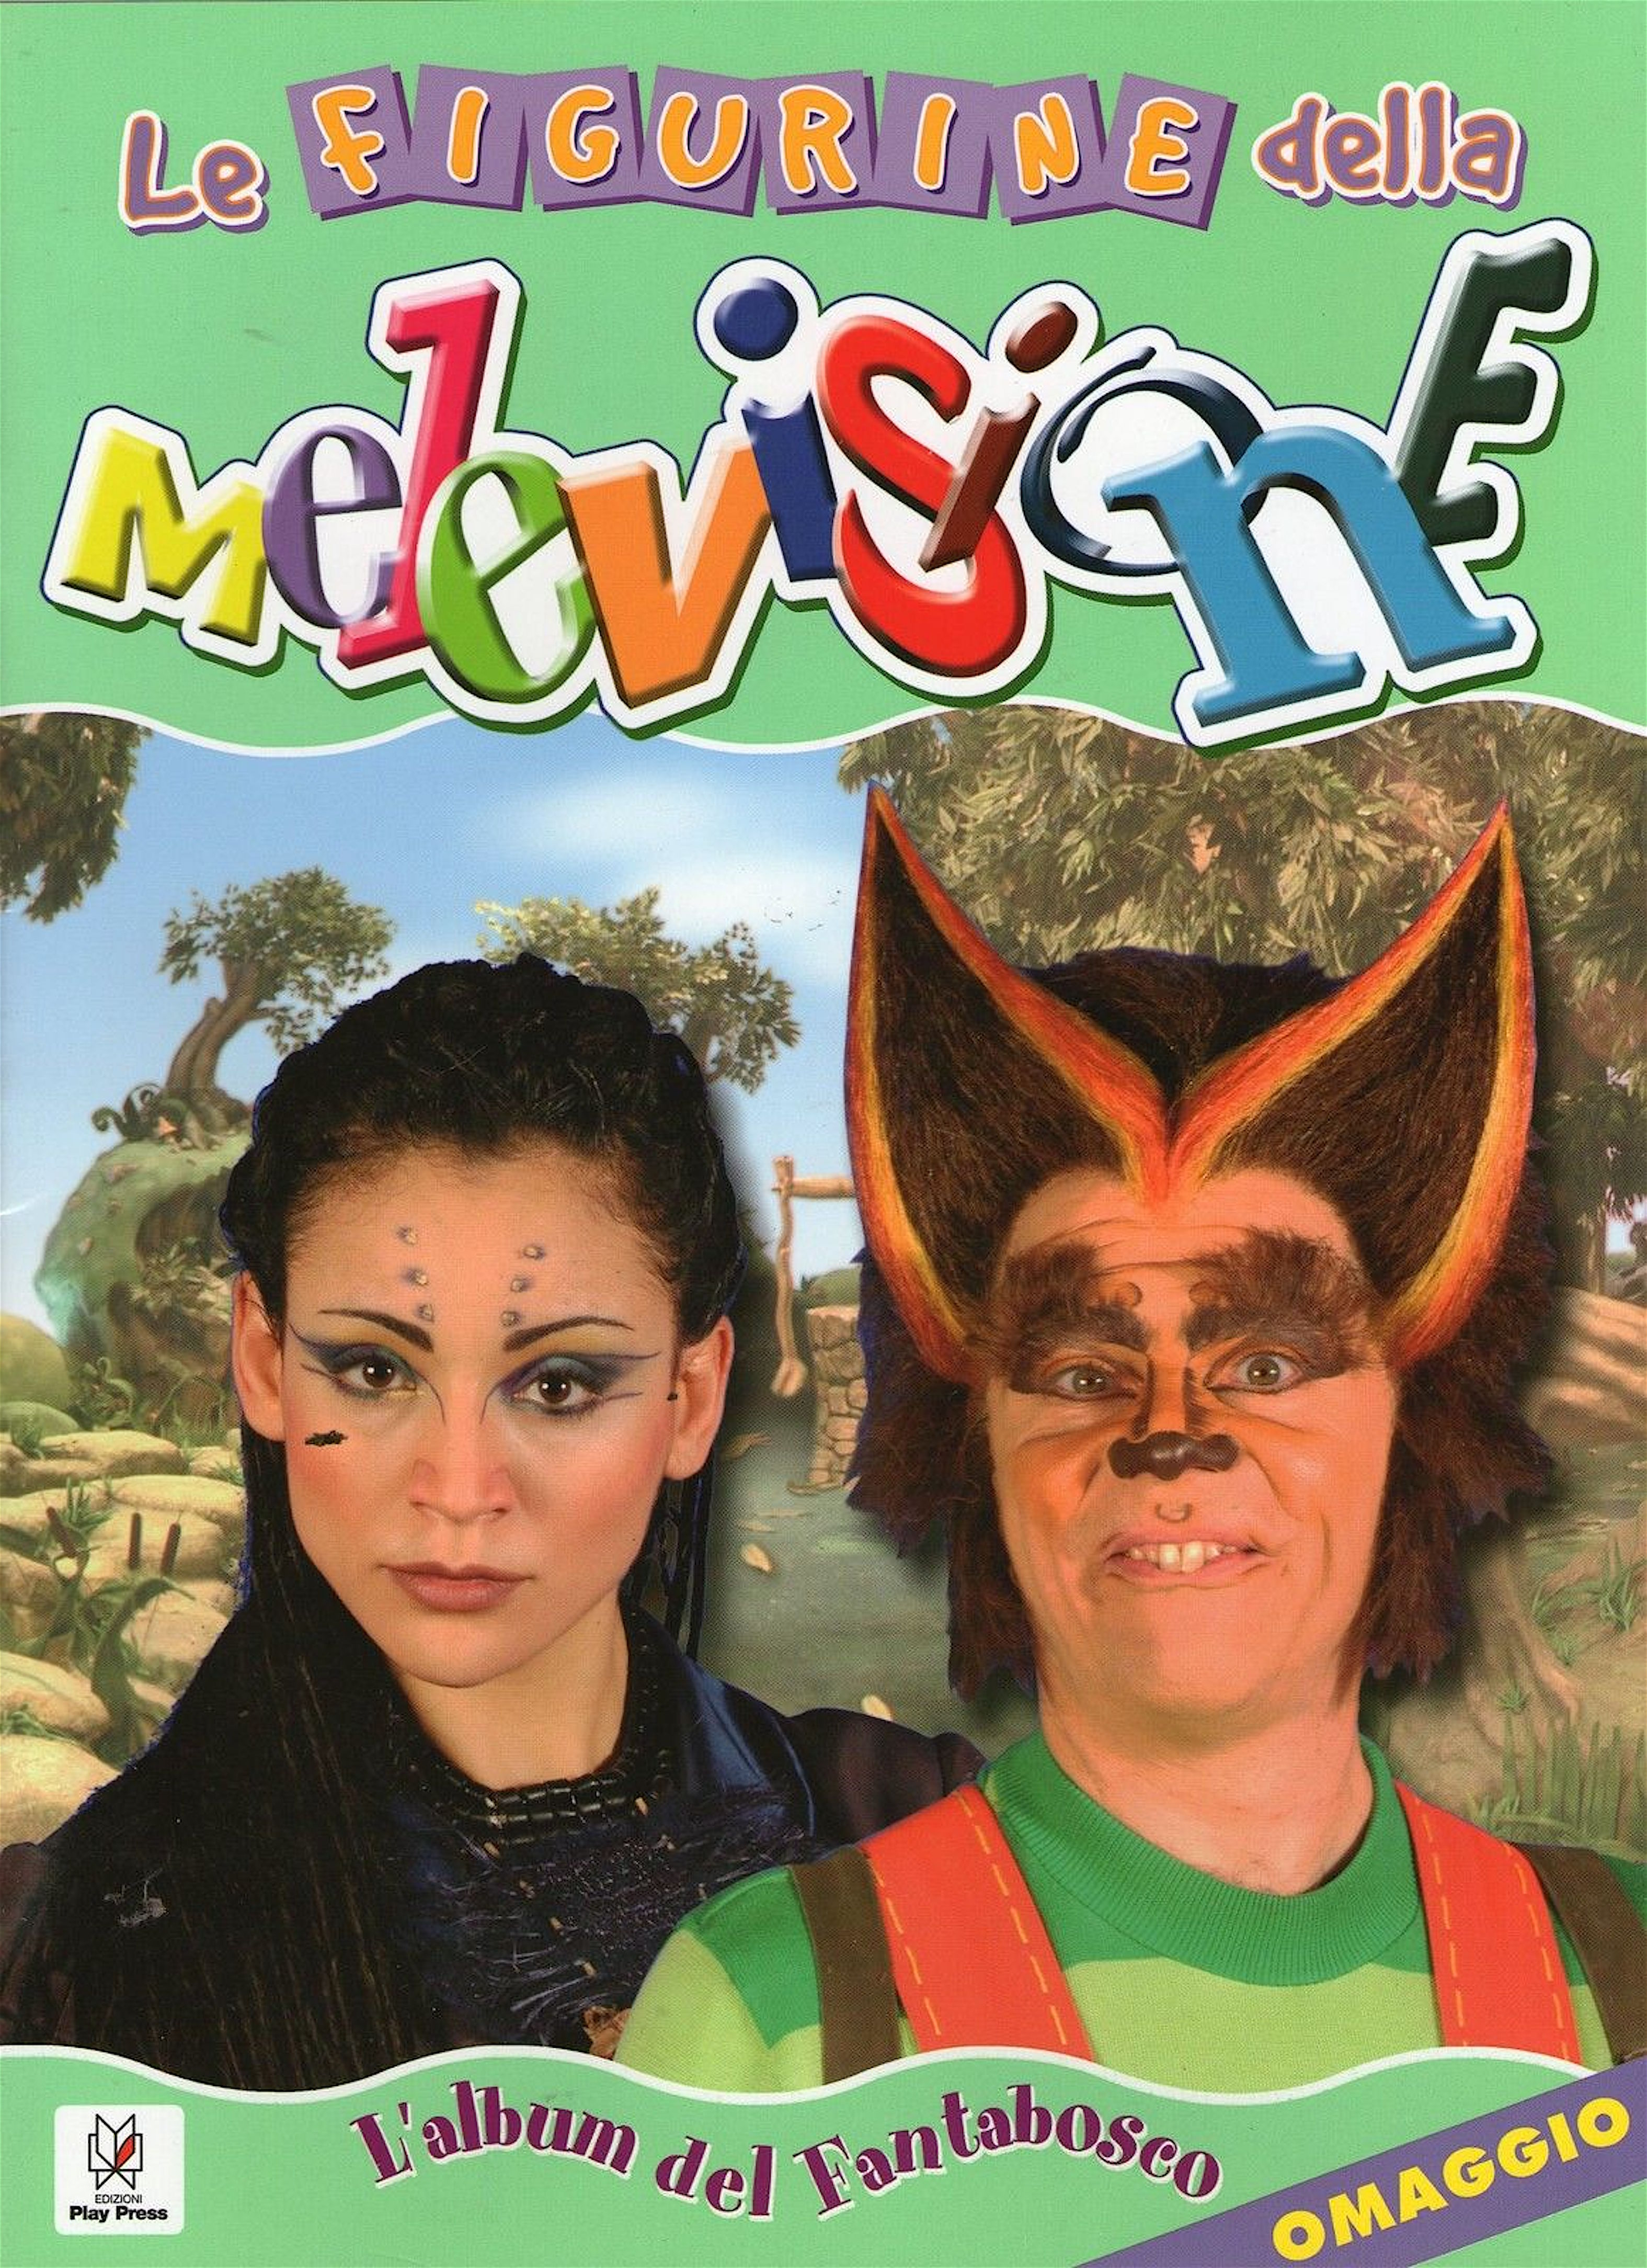 melevisione